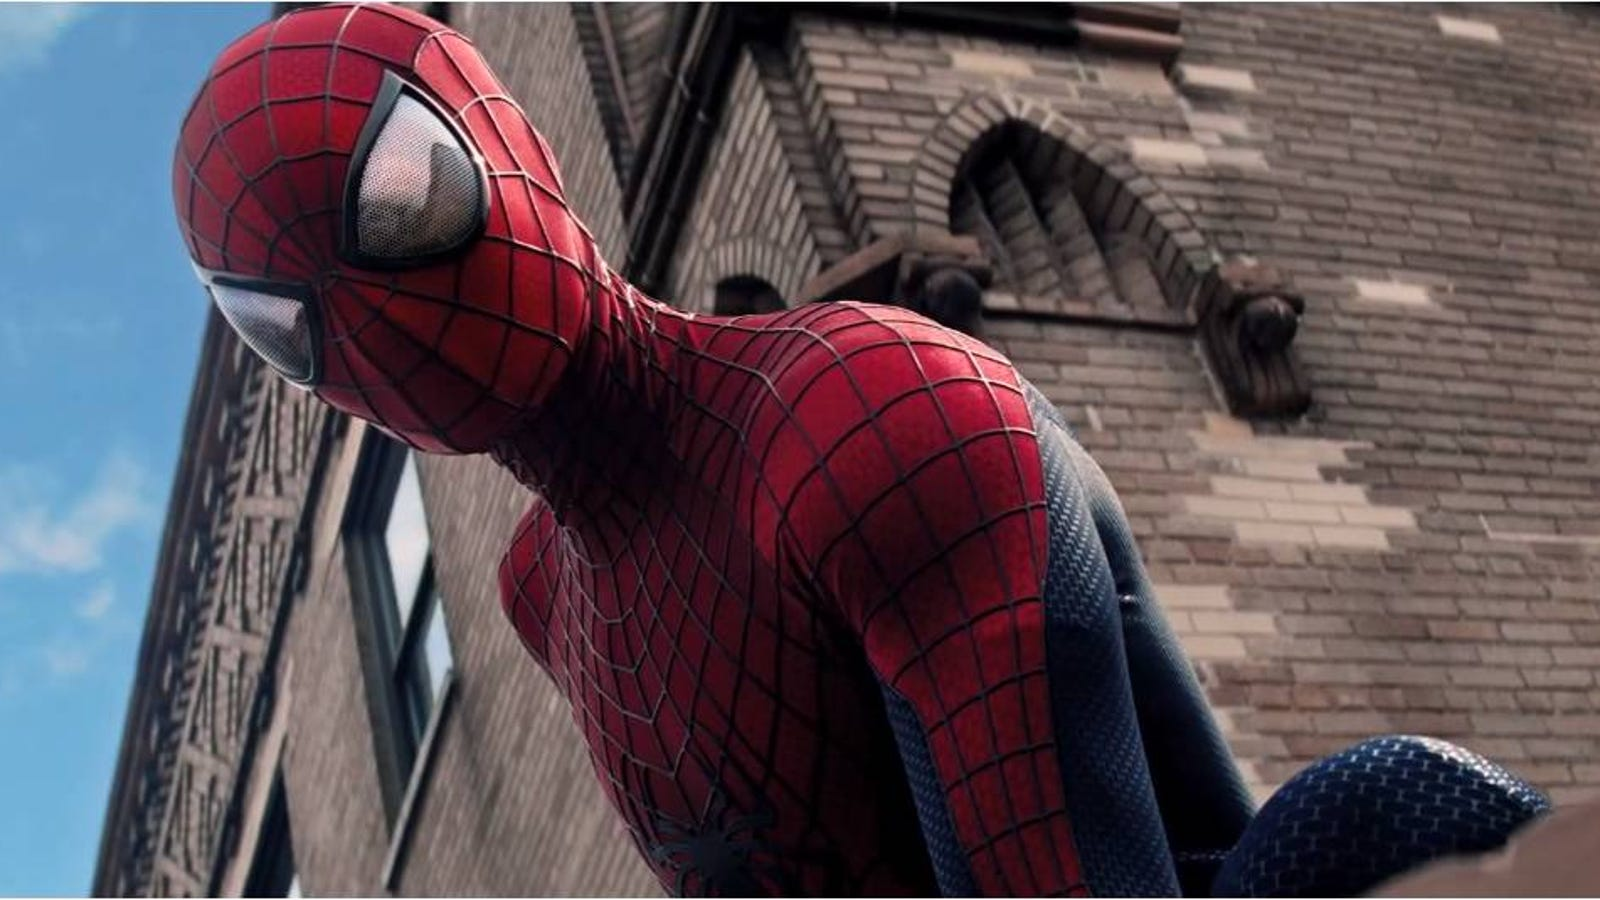 El primer trailer de The Amazing Spider-Man 2 ya está aquí